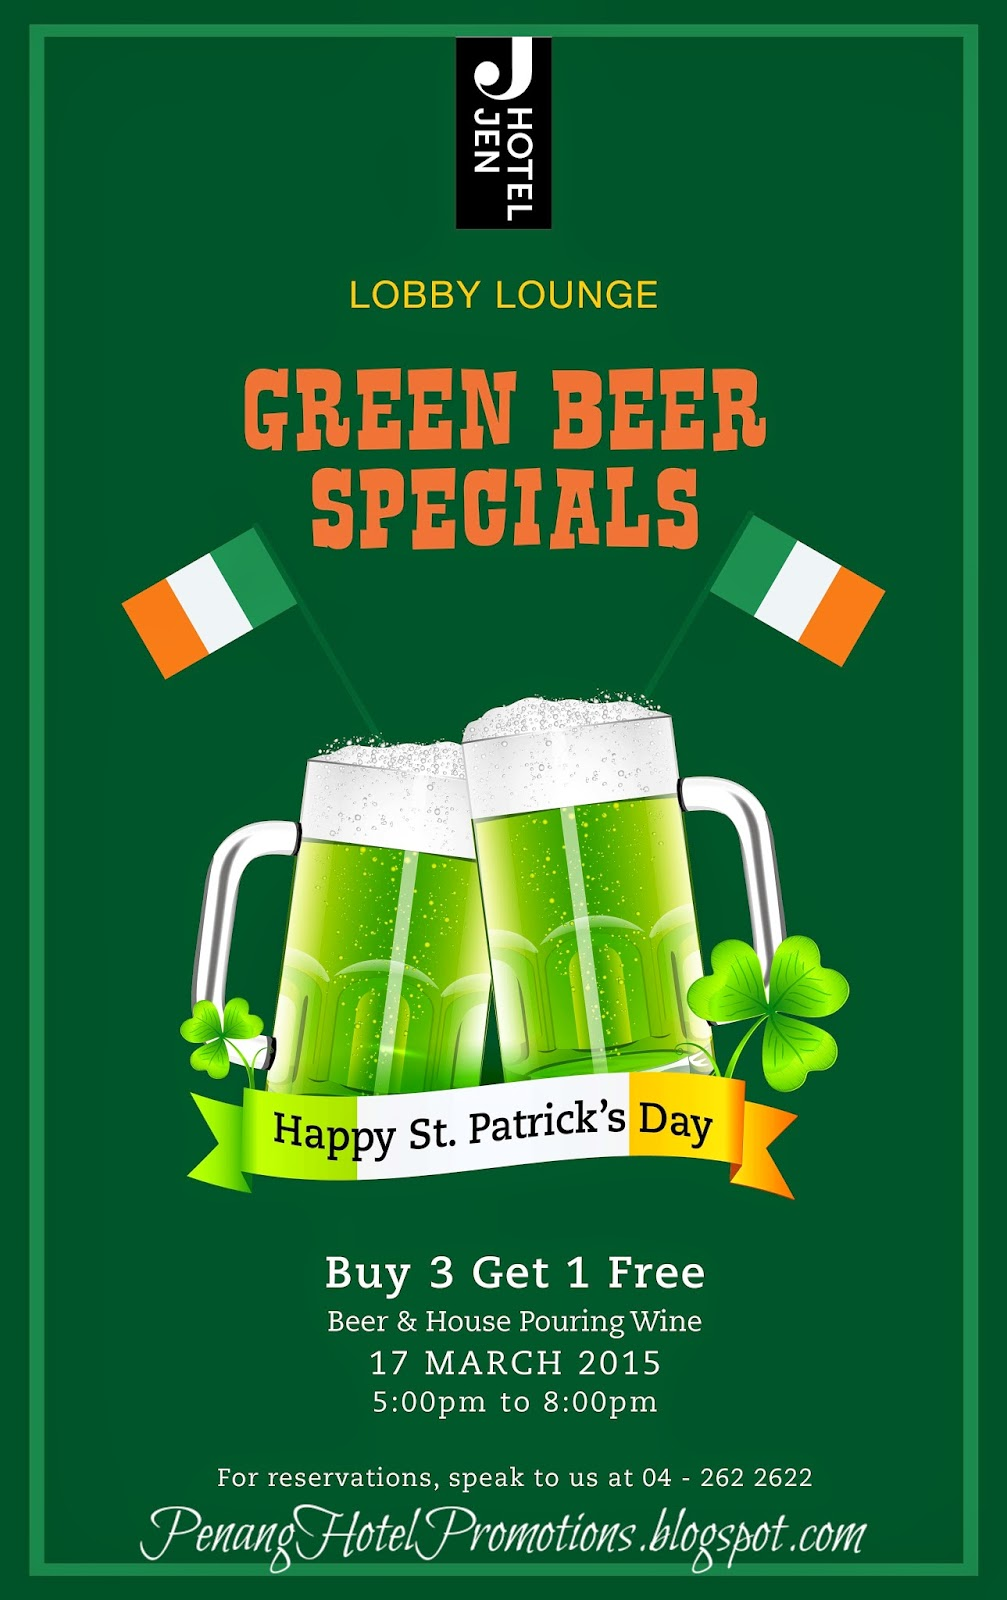 The best site for hotel deals on St Patricks Day.